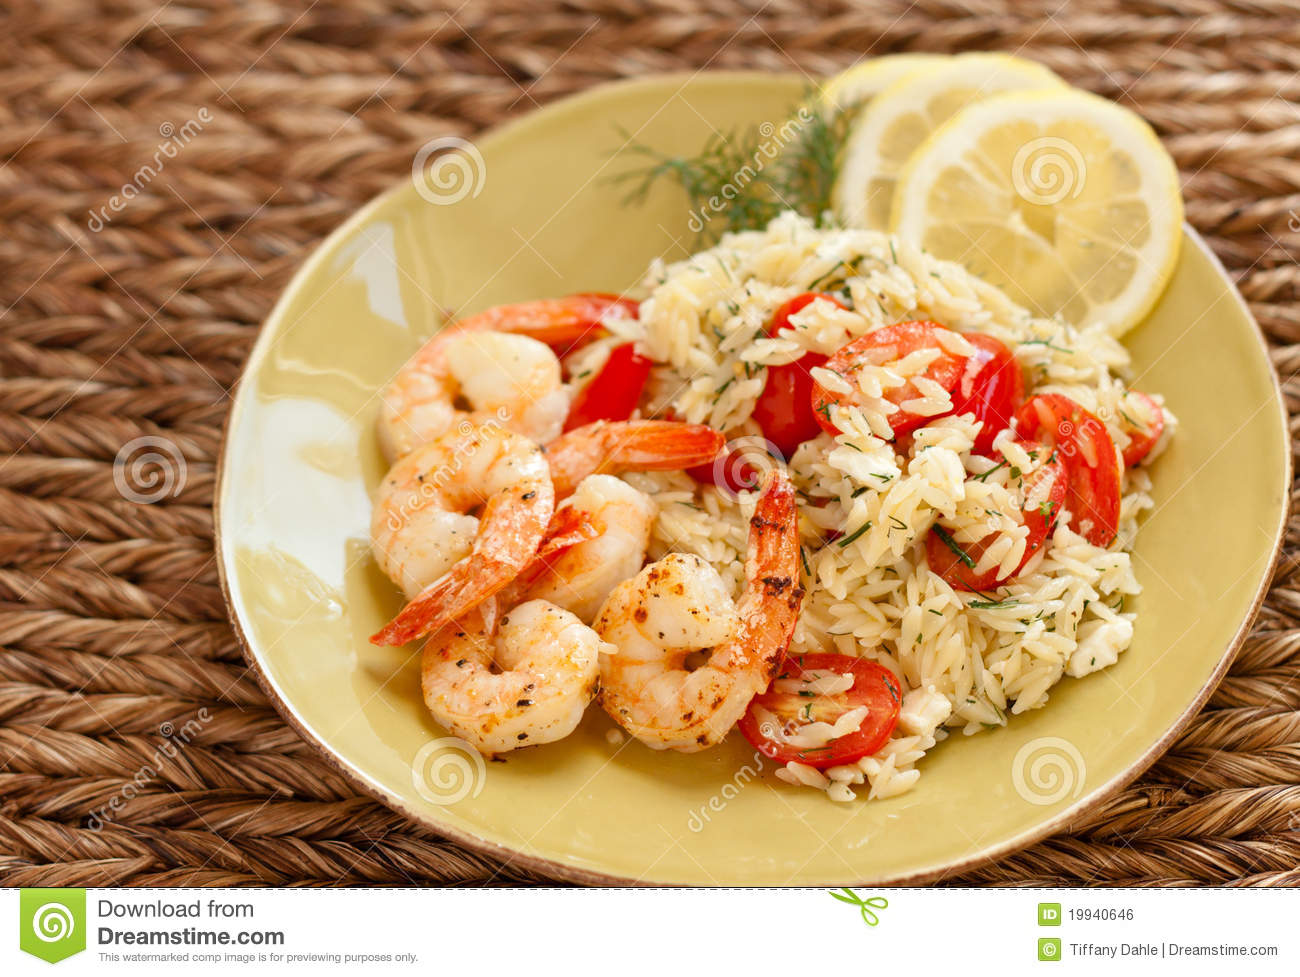 Shrimp and orzo with tomatoes